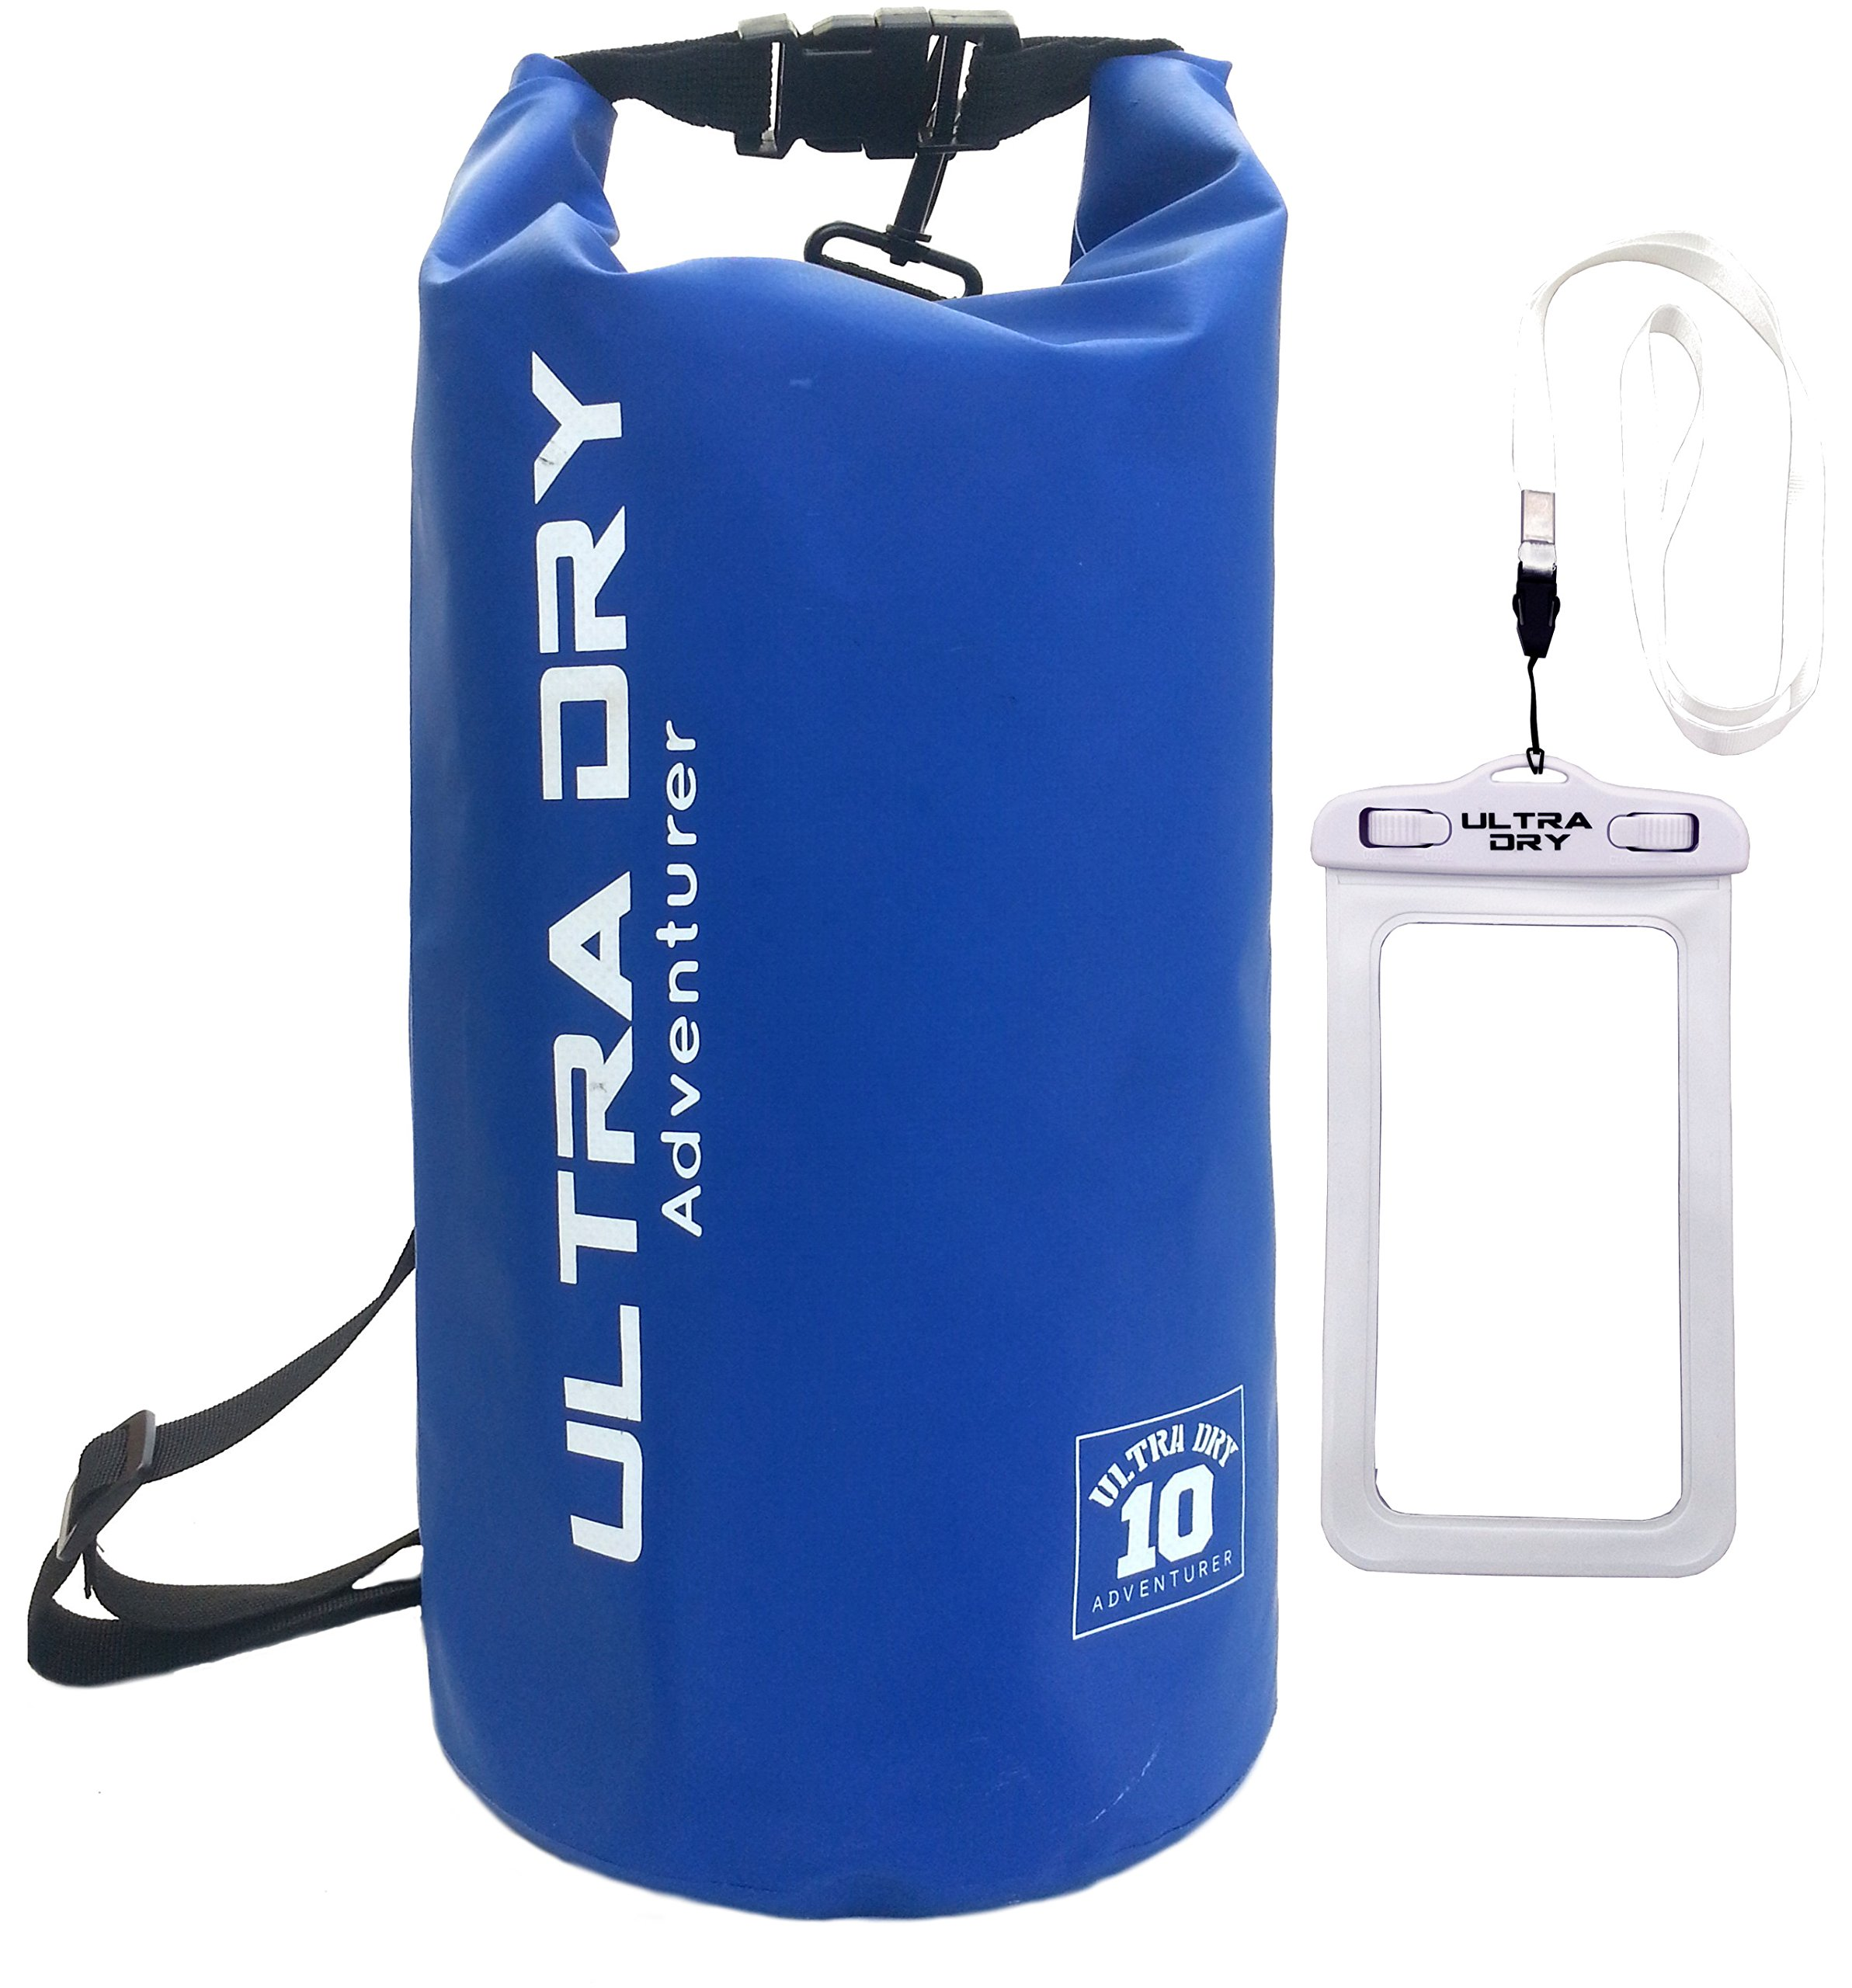 0251db024325 Best Rated in Boat Dry Bags   Helpful Customer Reviews - Amazon.co.uk